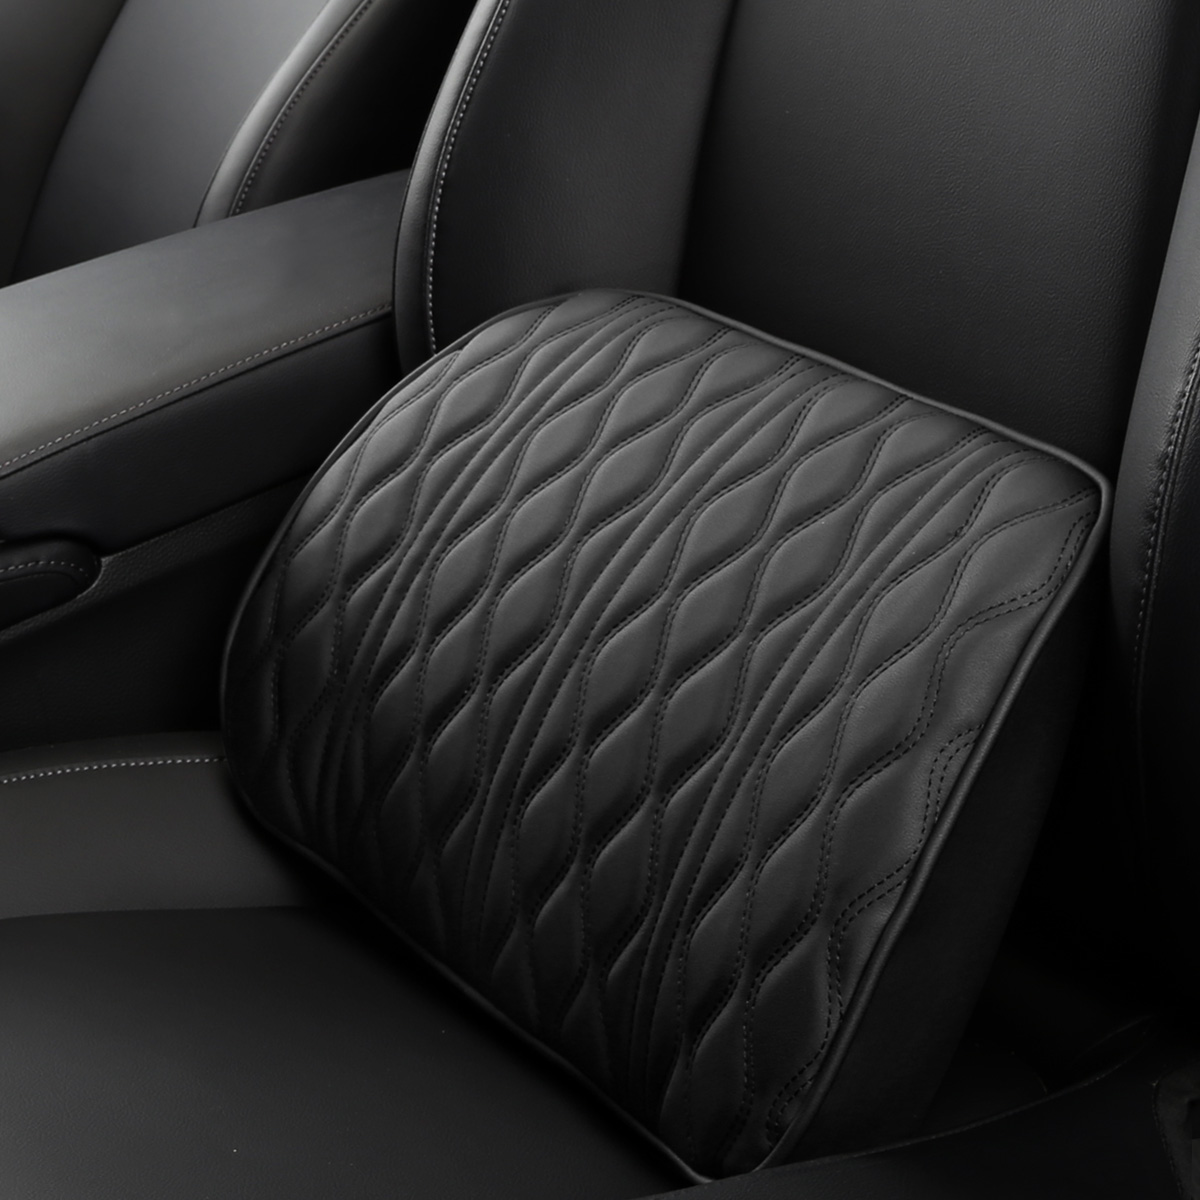 Memory Foam Car Headrest Pillow Leather Embroidered Seat Supports Sets Back Cushion Adjustment Auto Neck Rest Lumbar Pillows